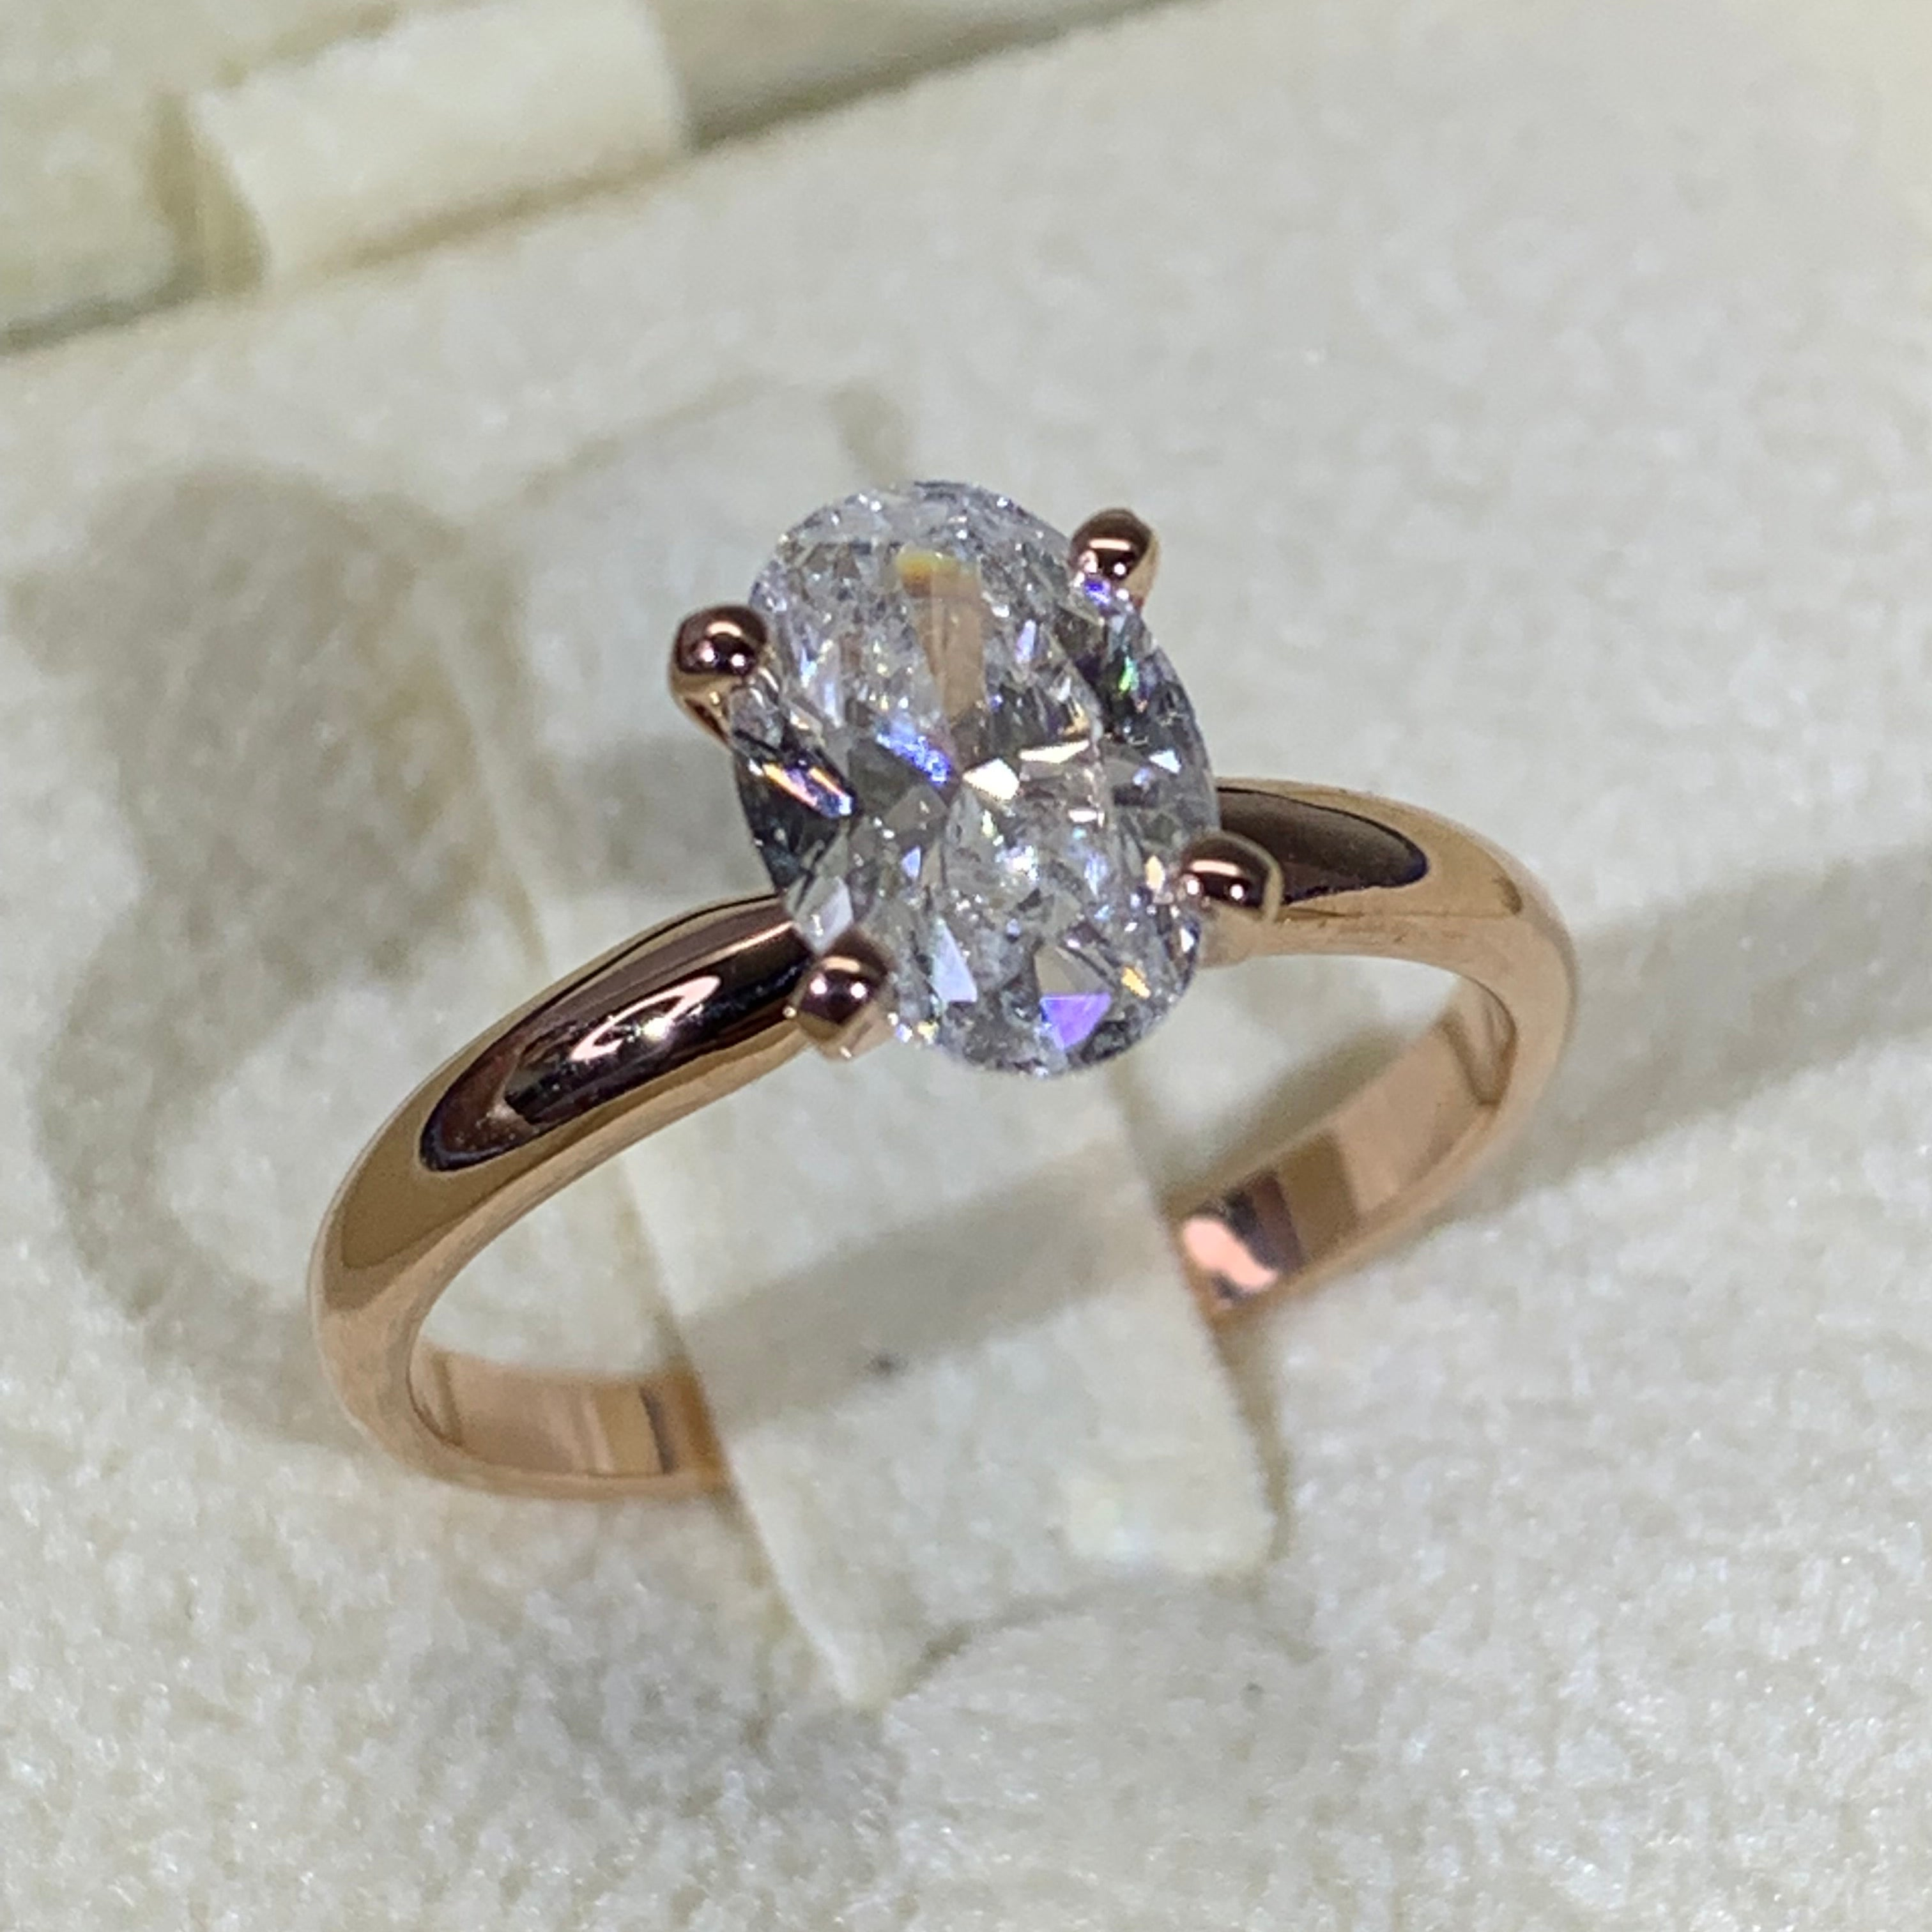 2.15 Carat Oval Shape Moissanite DVVS1- 14K Rose Gold Classic Solitaire Engagement Ring #M10041